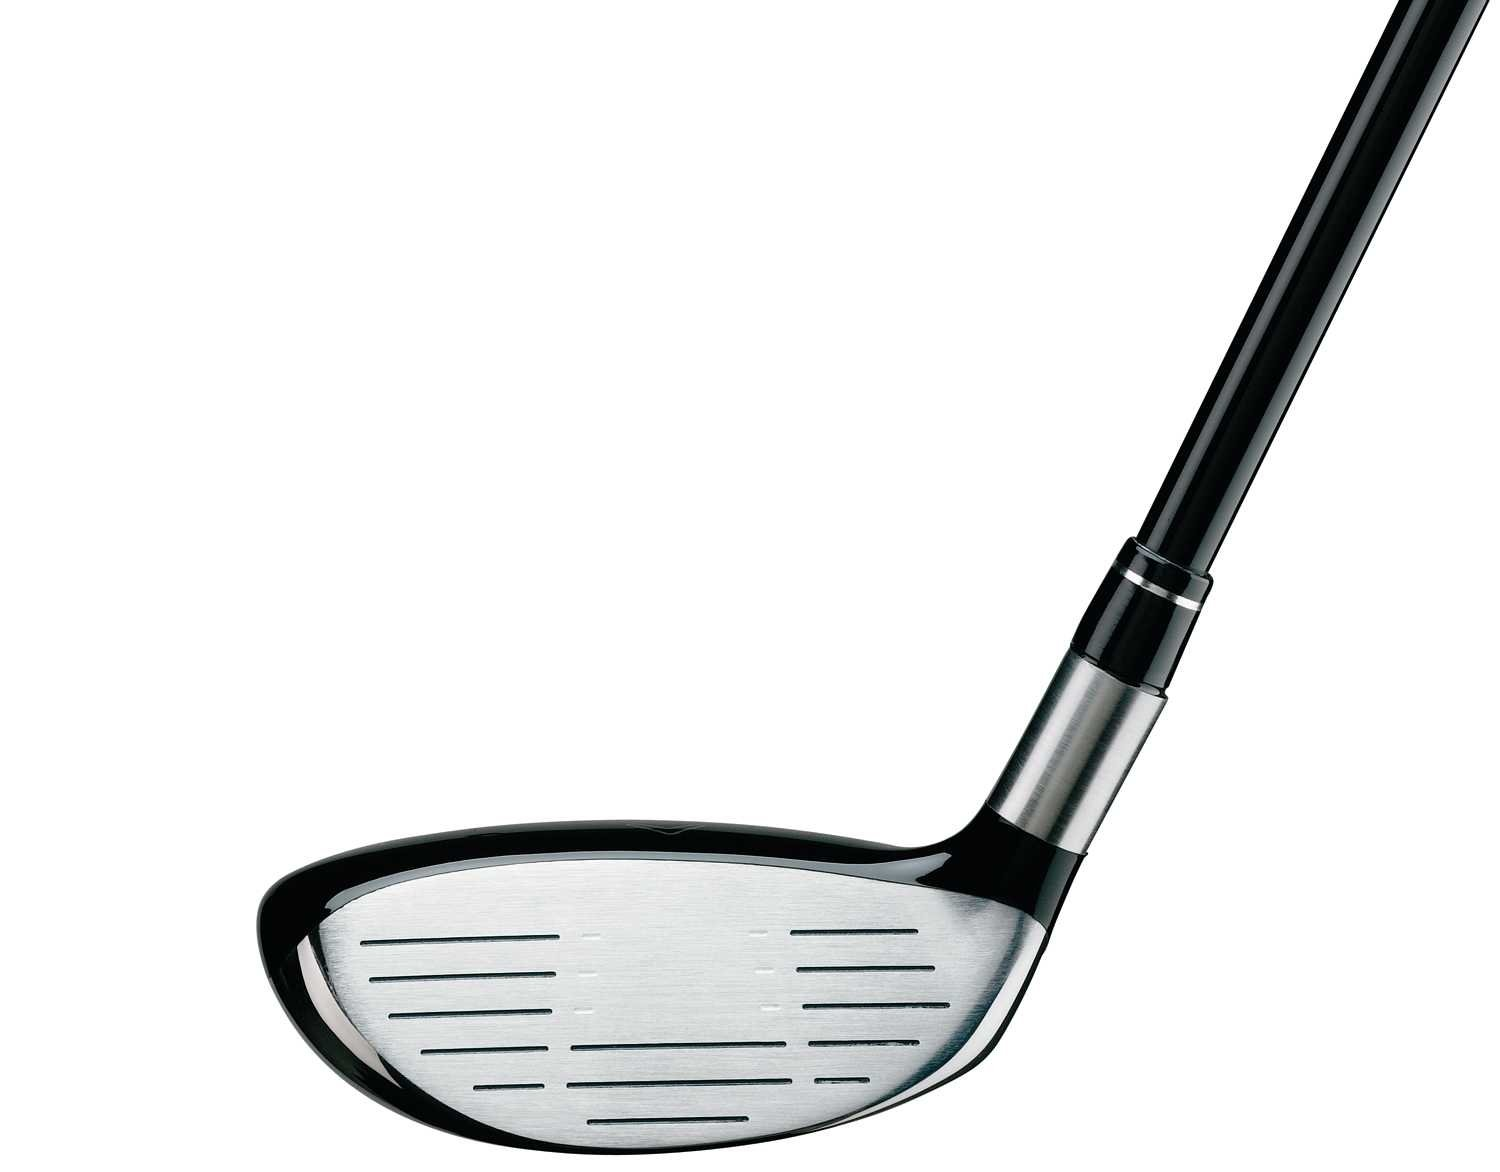 Amazon.com: Callaway ft 08 híbrido (Draw): Sports & Outdoors